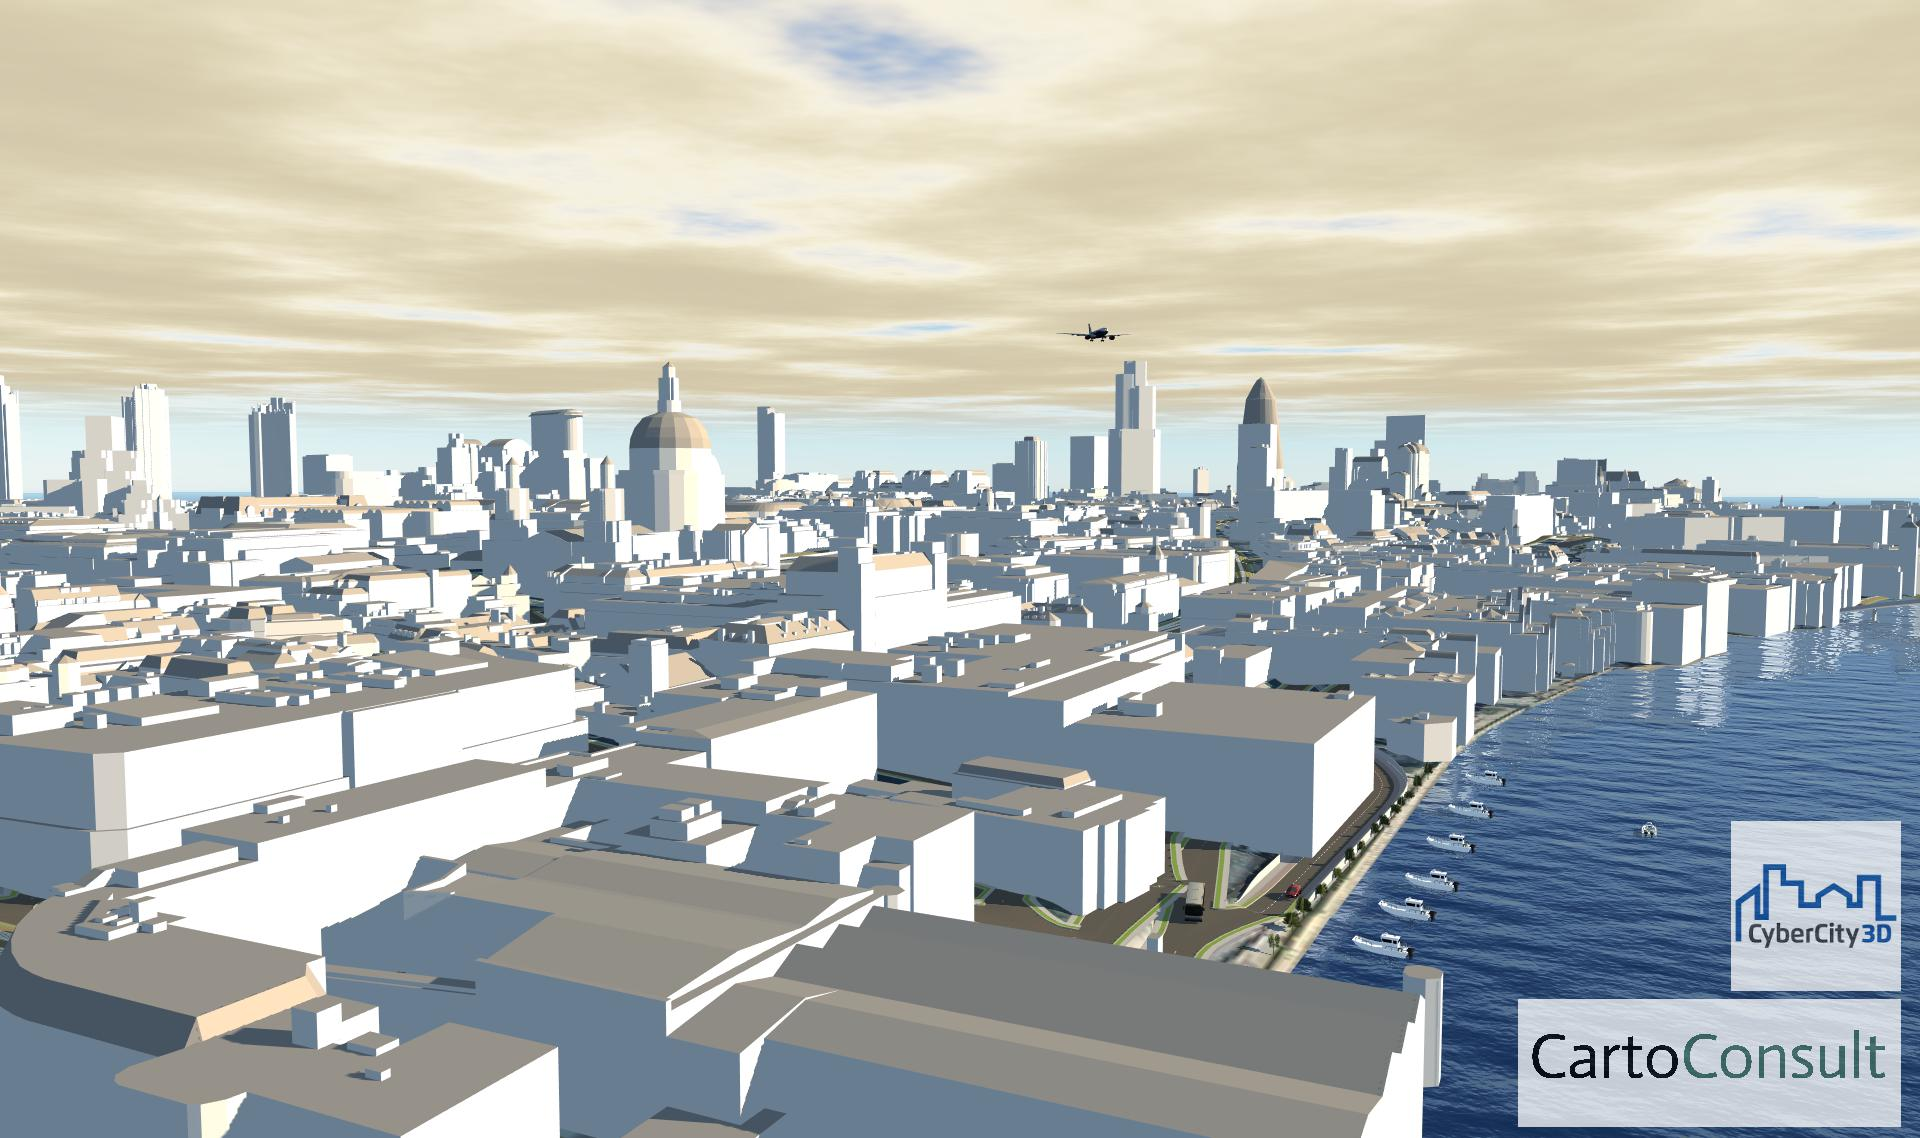 Cartoconsult-3d-city-modelling-3-3500-3500